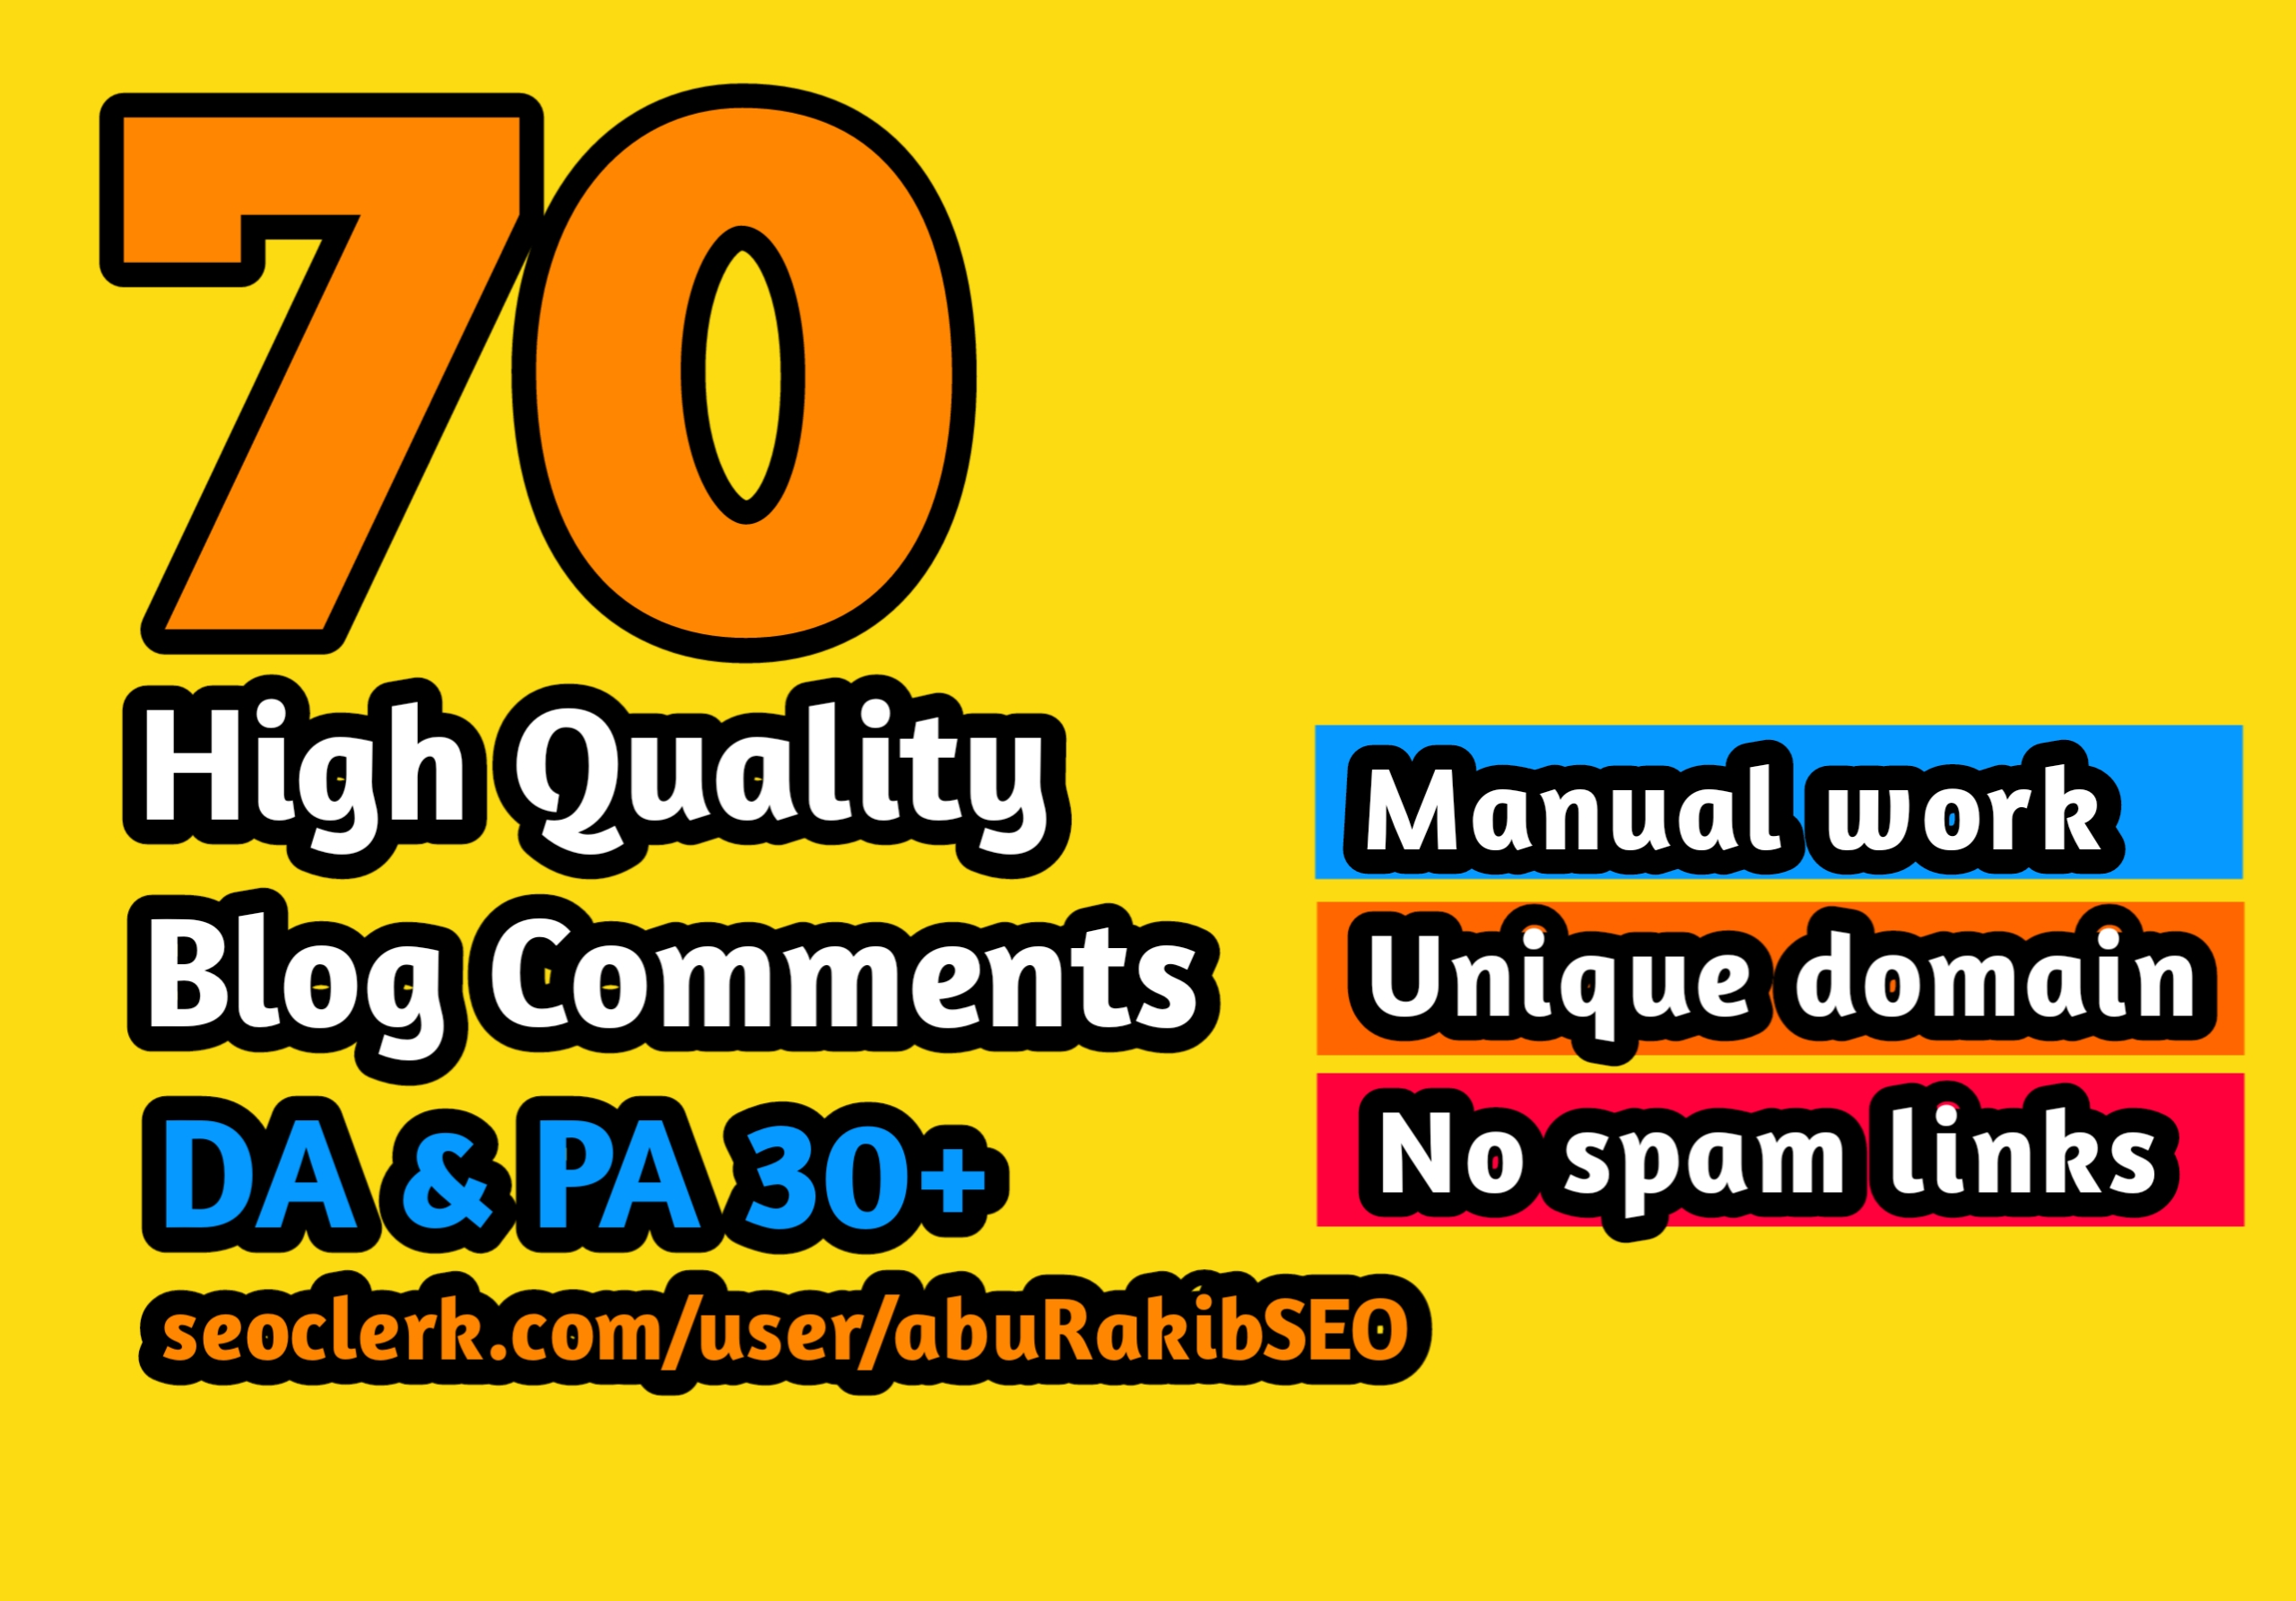 Manually create 70 High Quality Blog Comments